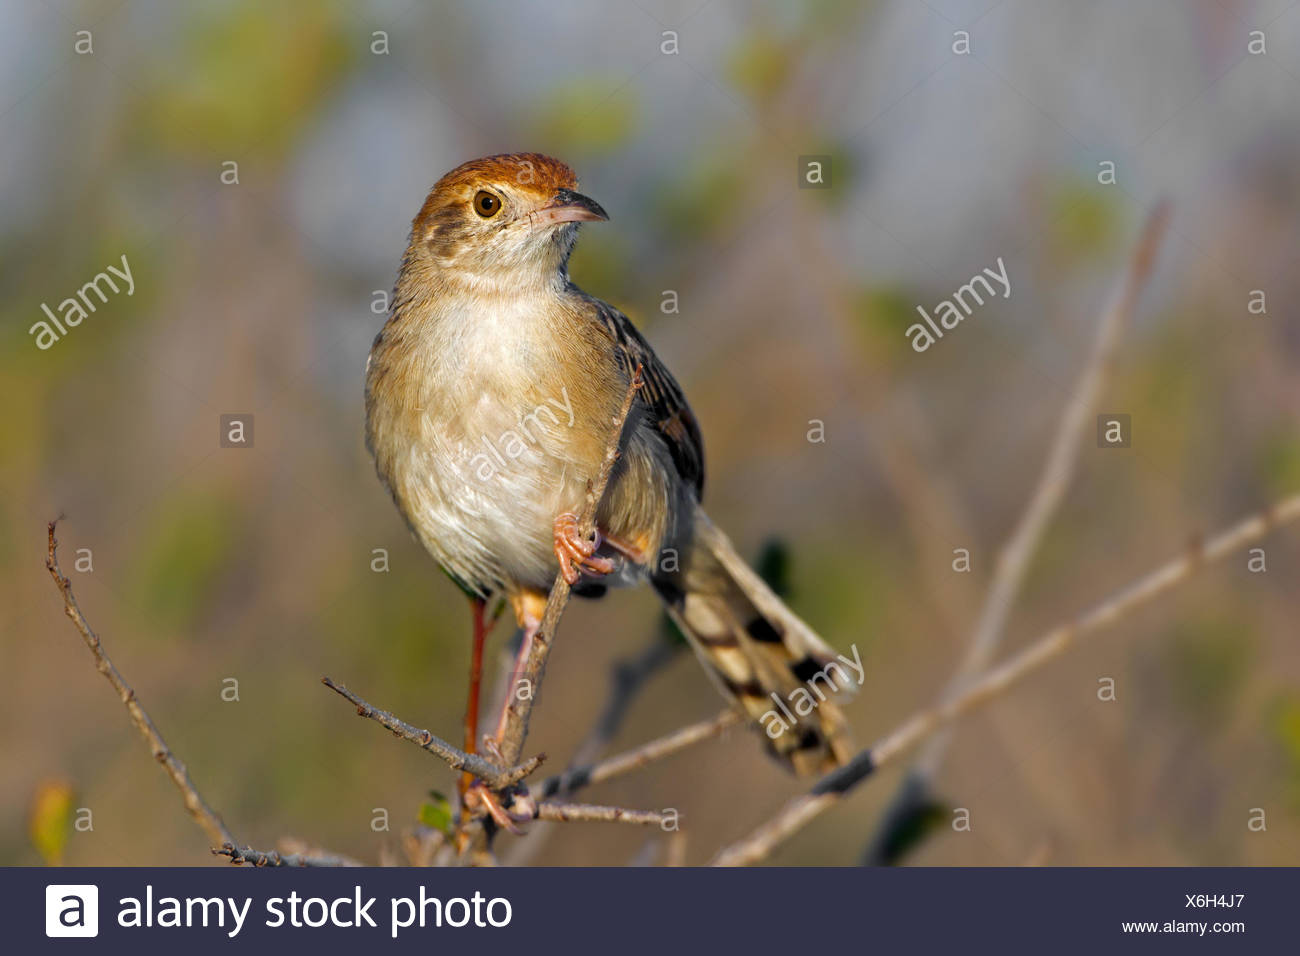 rattling cisticola (Cisticola chiniana), sitting on a sprout, South Africa, Krueger National Park, Letaba Camp - Stock Image